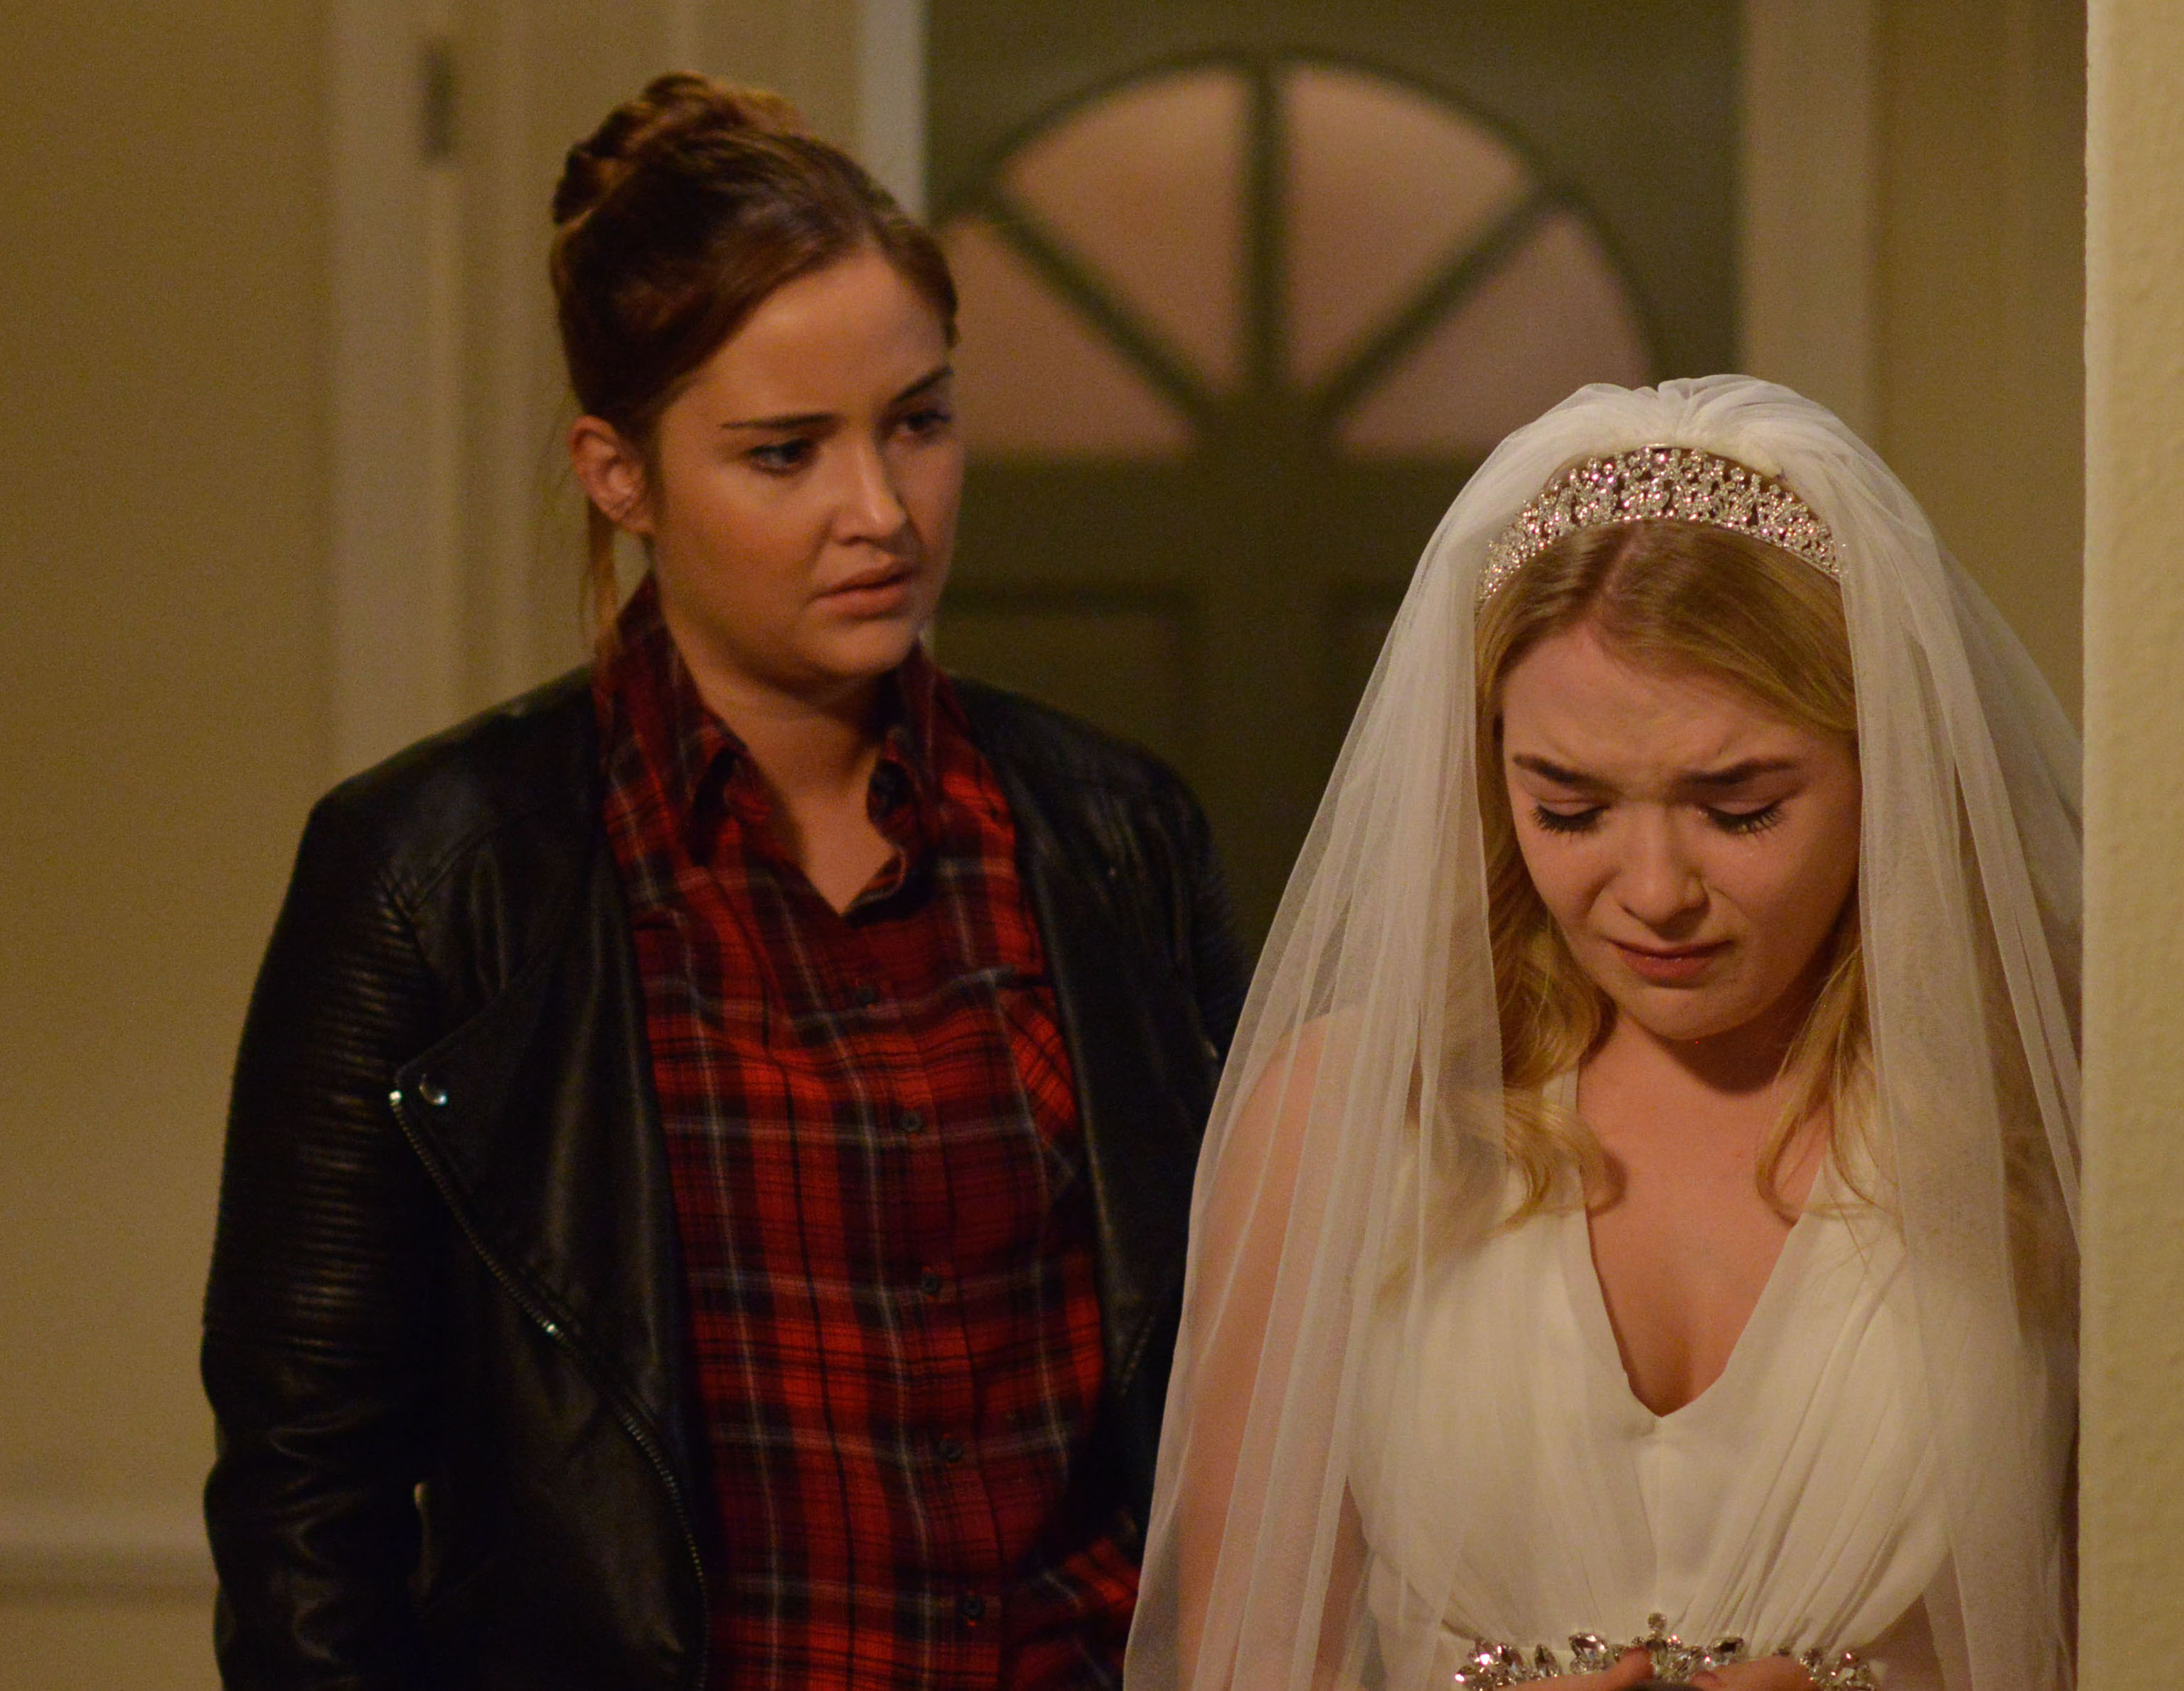 14274116-high_res-eastenders-october-_odjfosiajdosaijdoasjdoasijdecember-2017